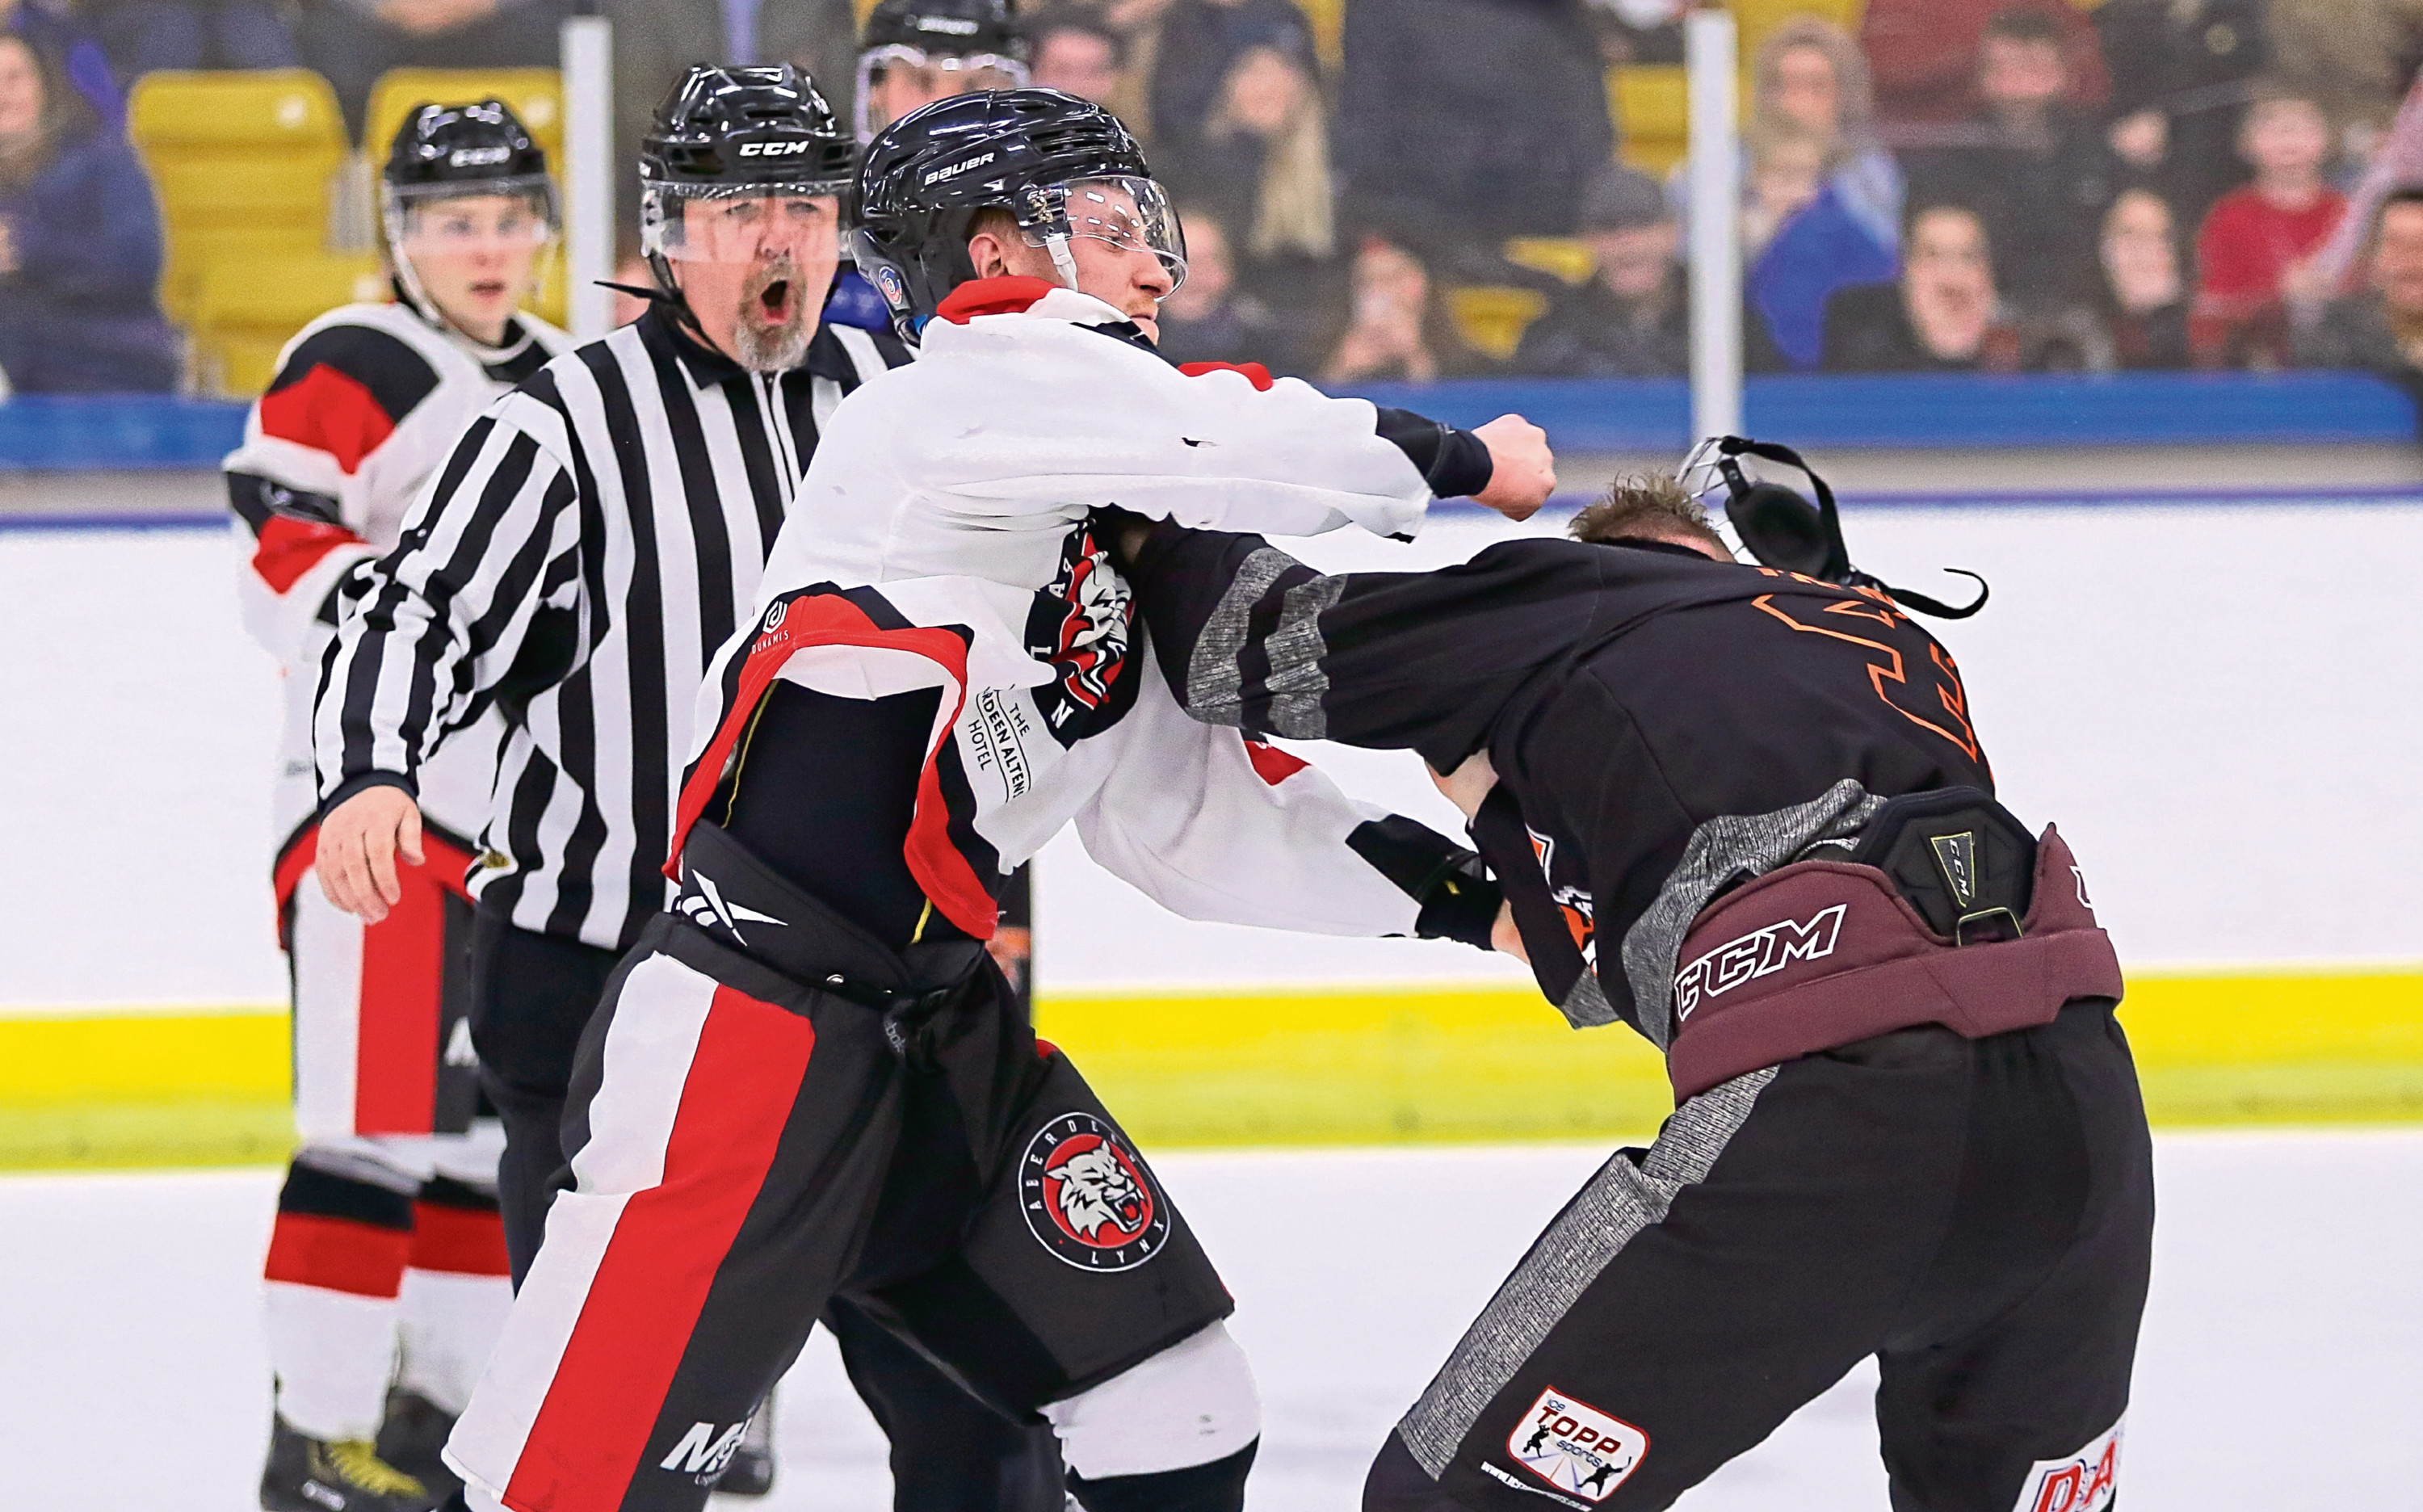 Johnny Jack gets in a fight for Aberdeen Lynx against Dundee Tigers.